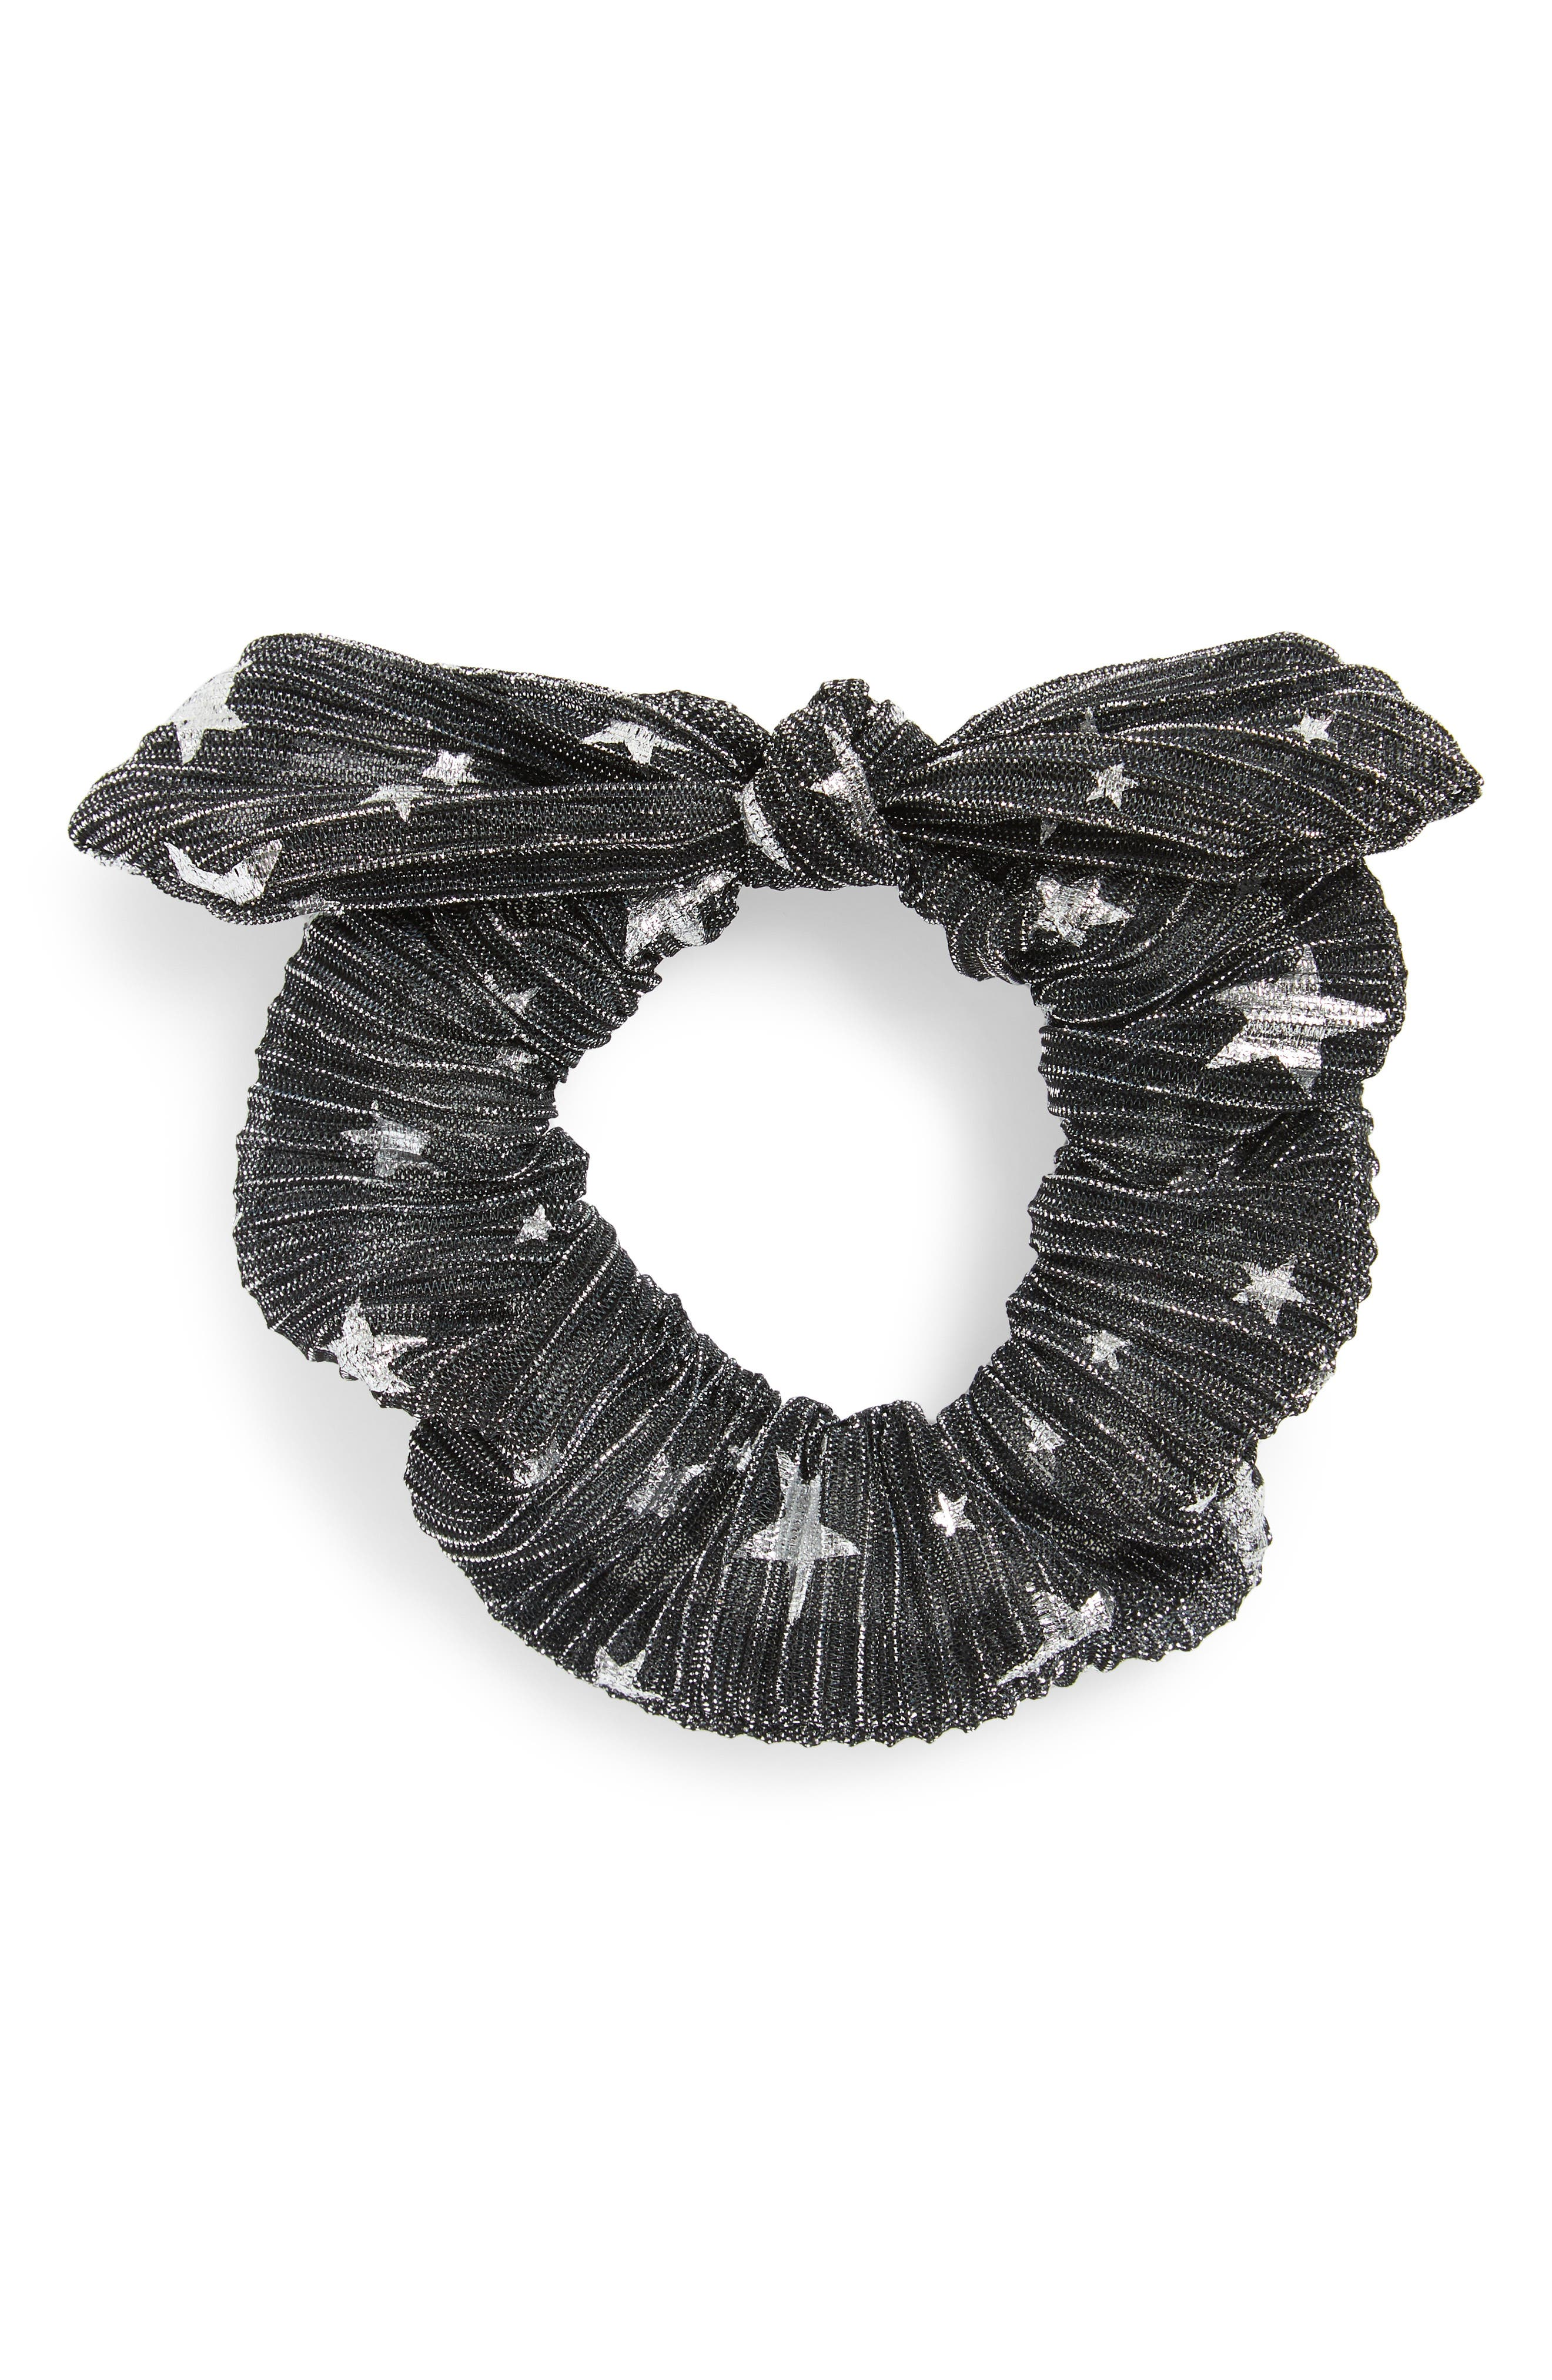 Foil Print Bunny Scrunchie,                             Main thumbnail 1, color,                             Black/ Silver